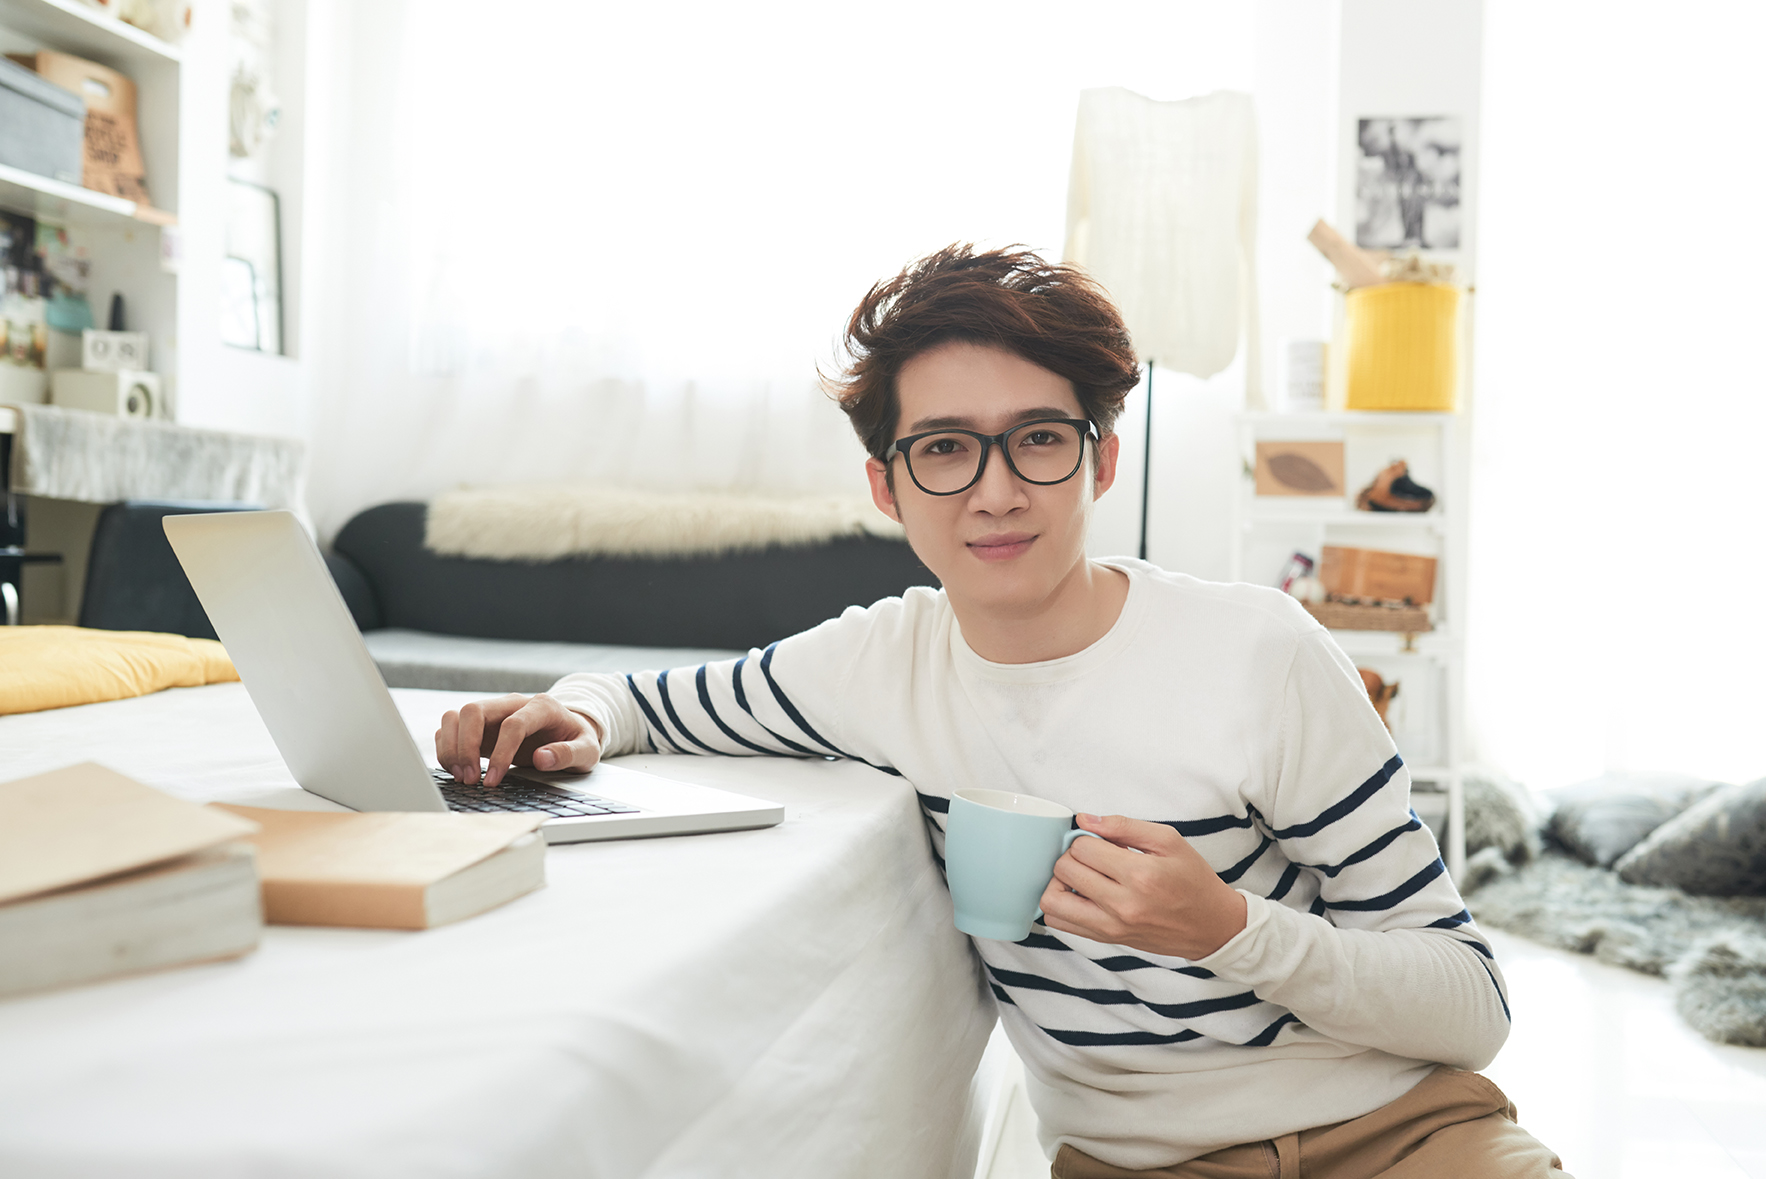 Student in his room